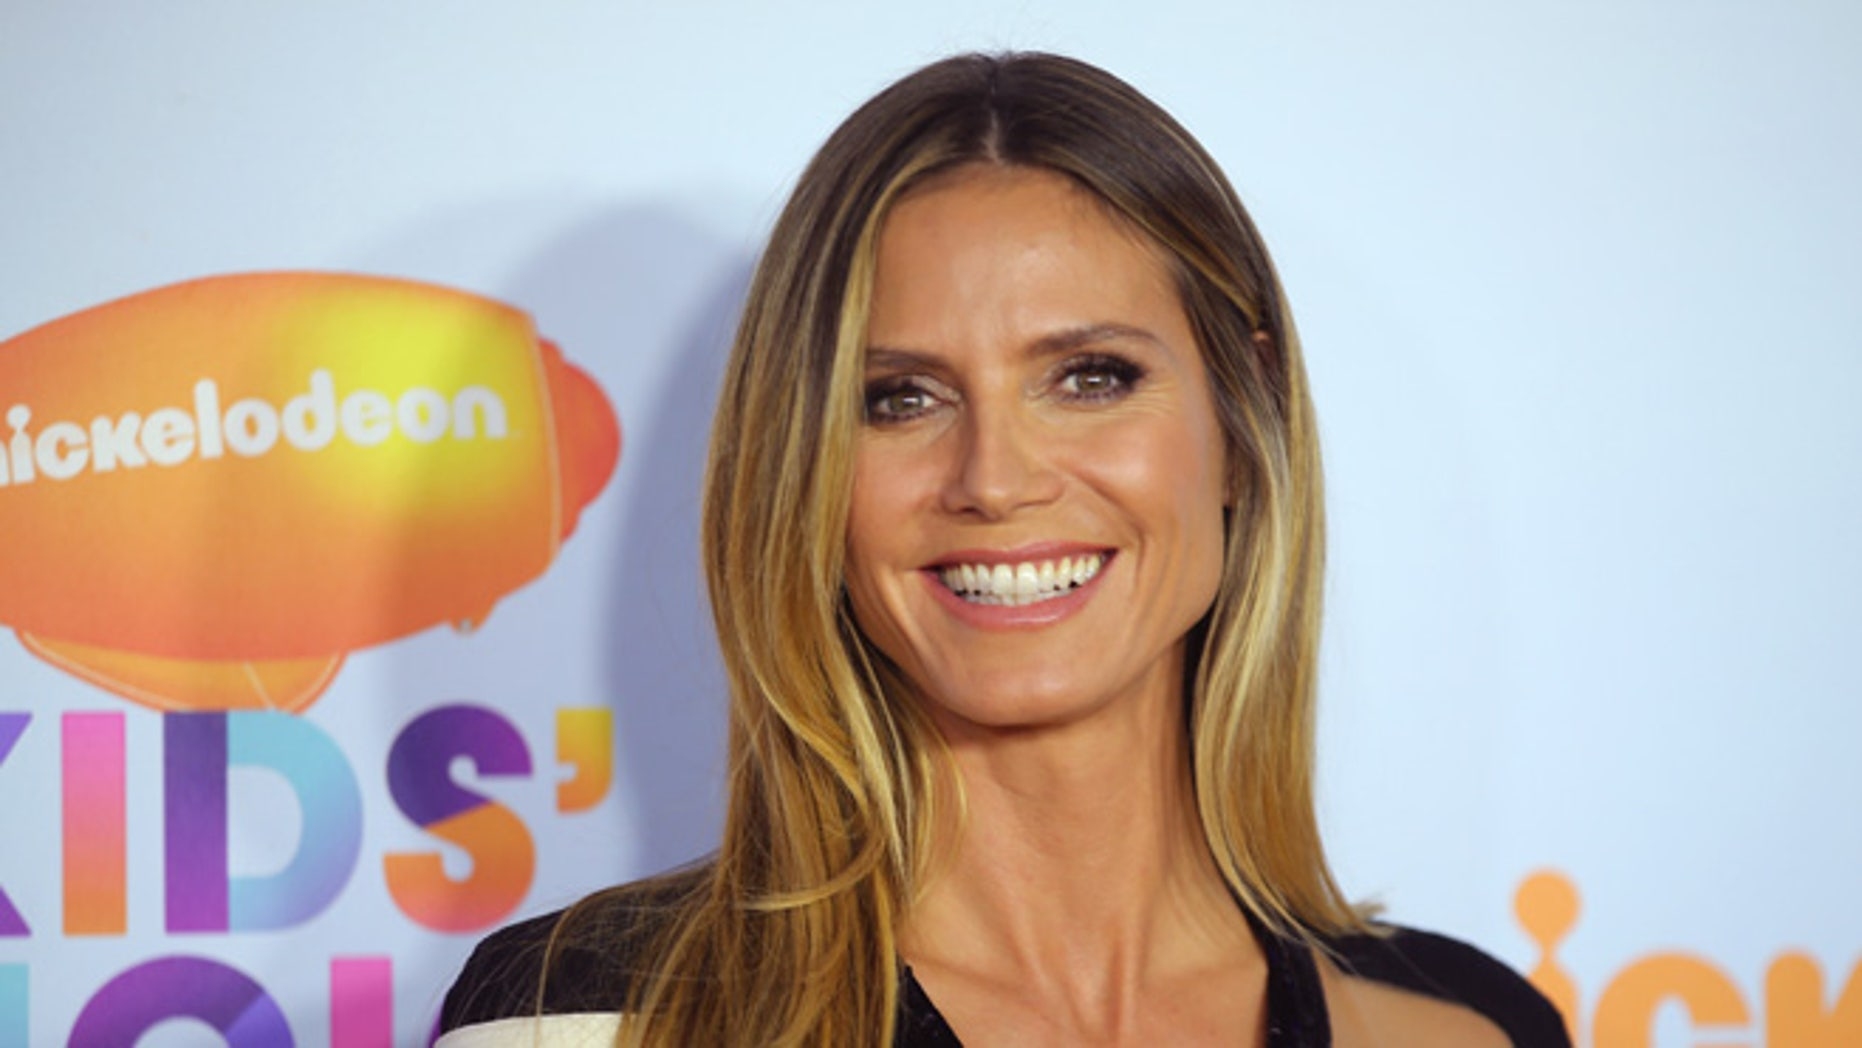 Heidi Klum has released a sexy new photo book.